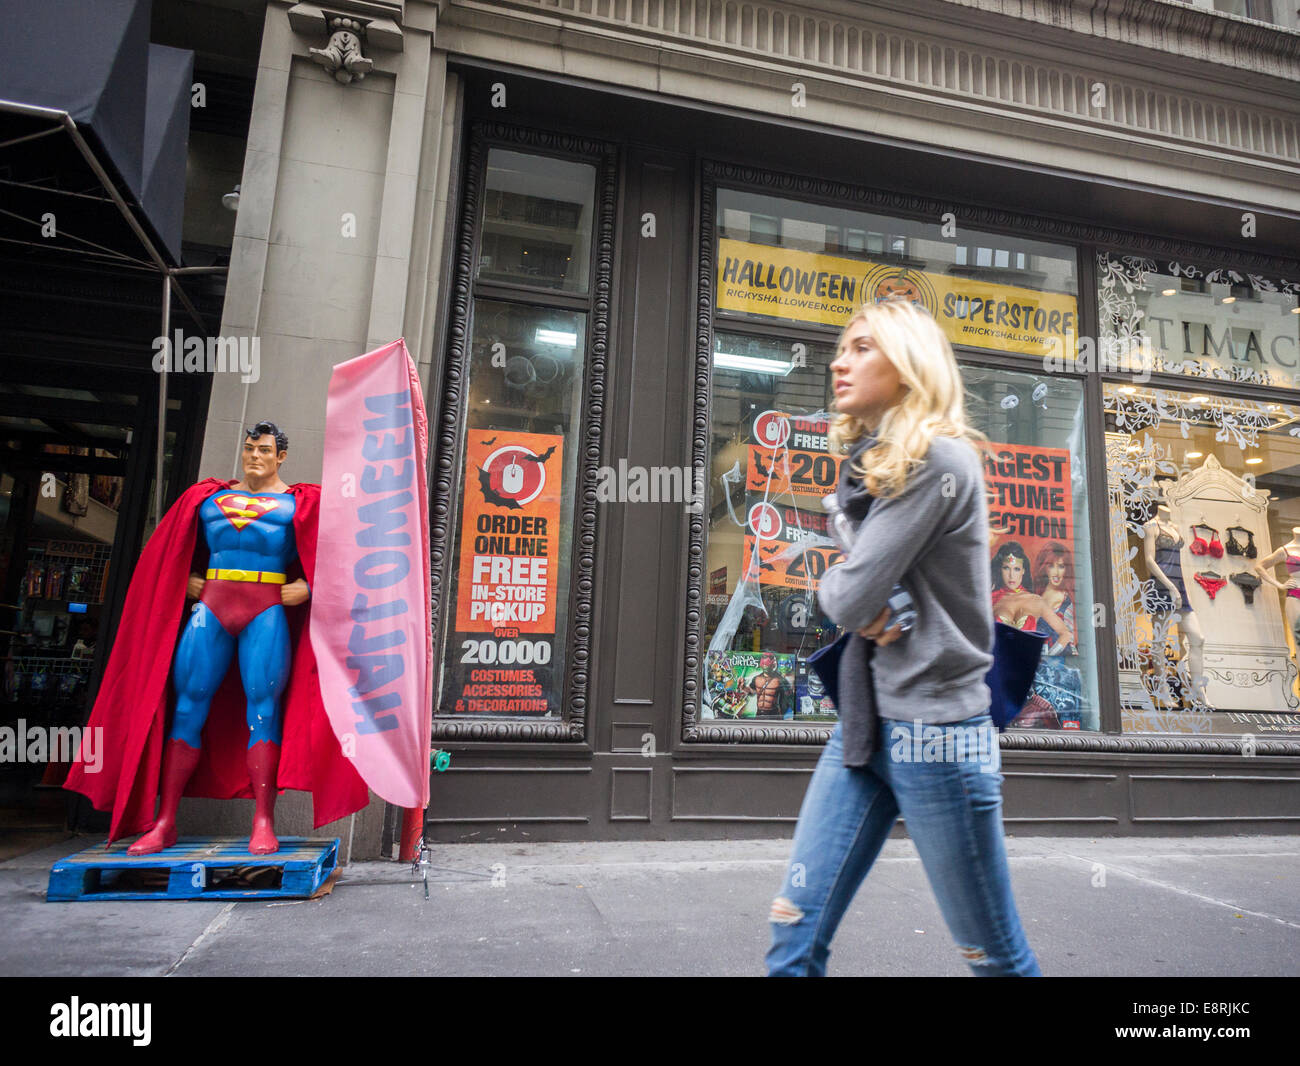 A Ricky's Halloween Superstore pop-up in New York Stock Photo ...